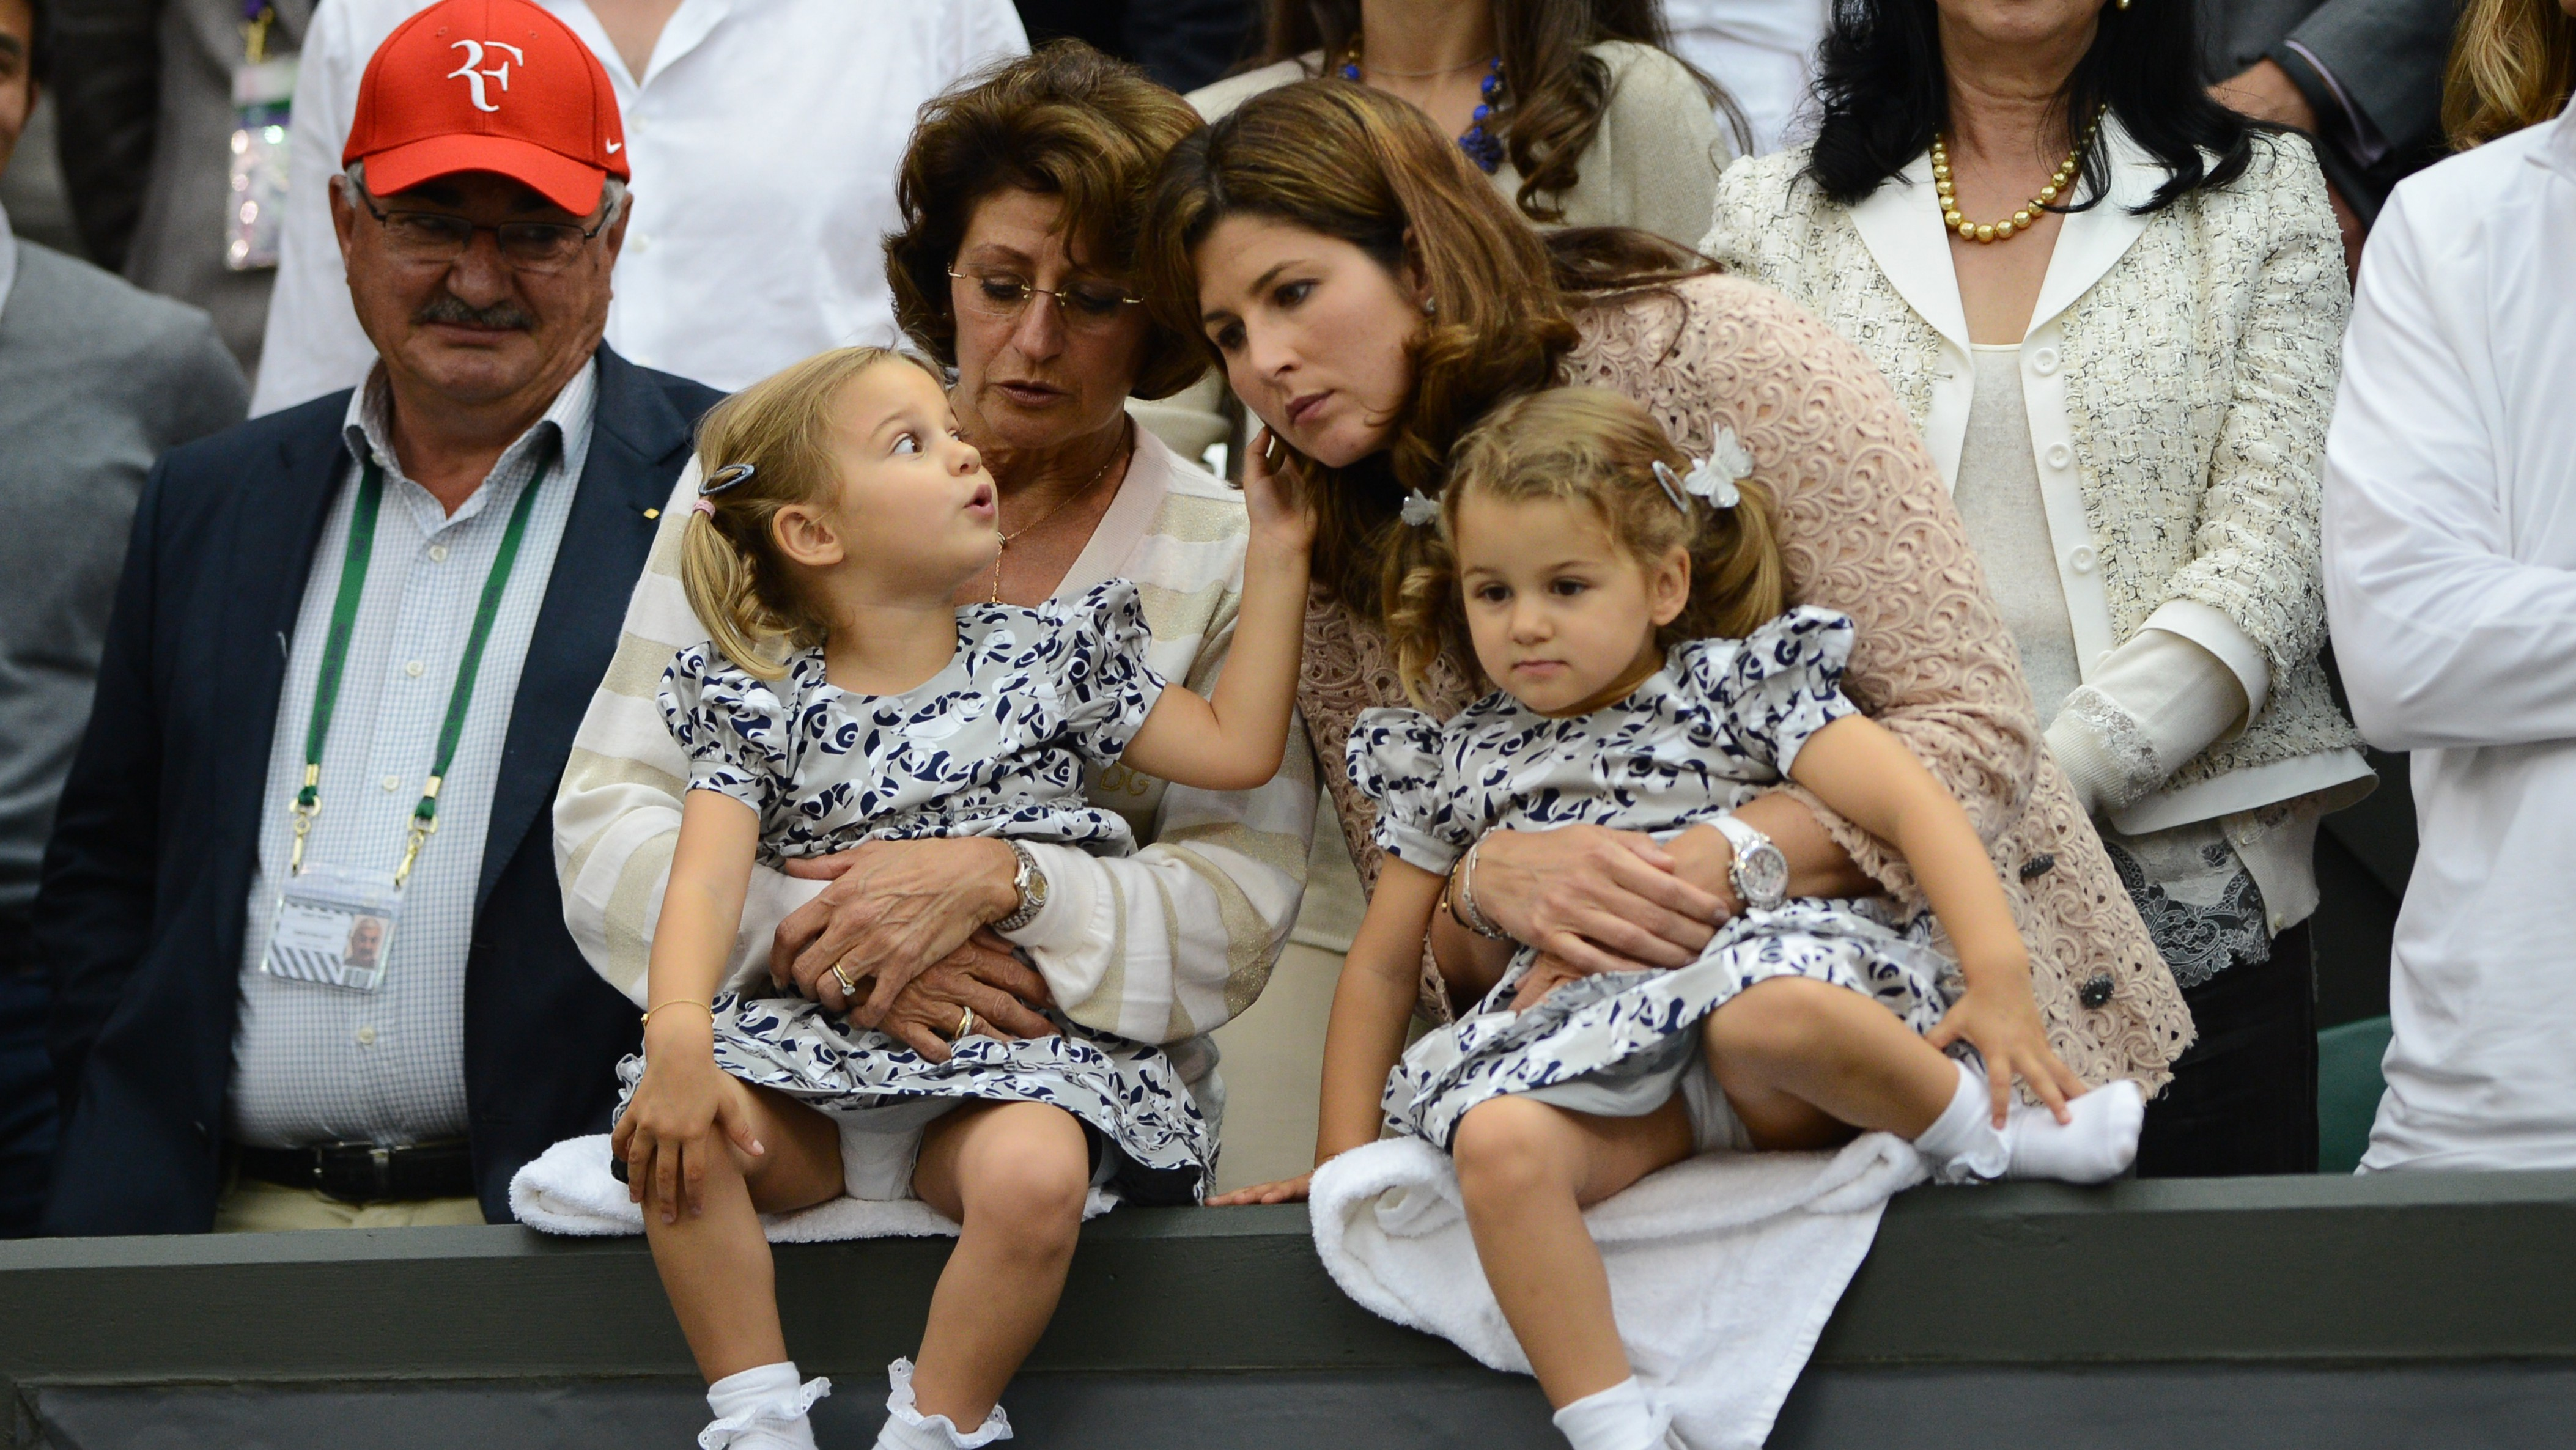 Roger Federer's Children: 5 Fast Facts You Need to Know